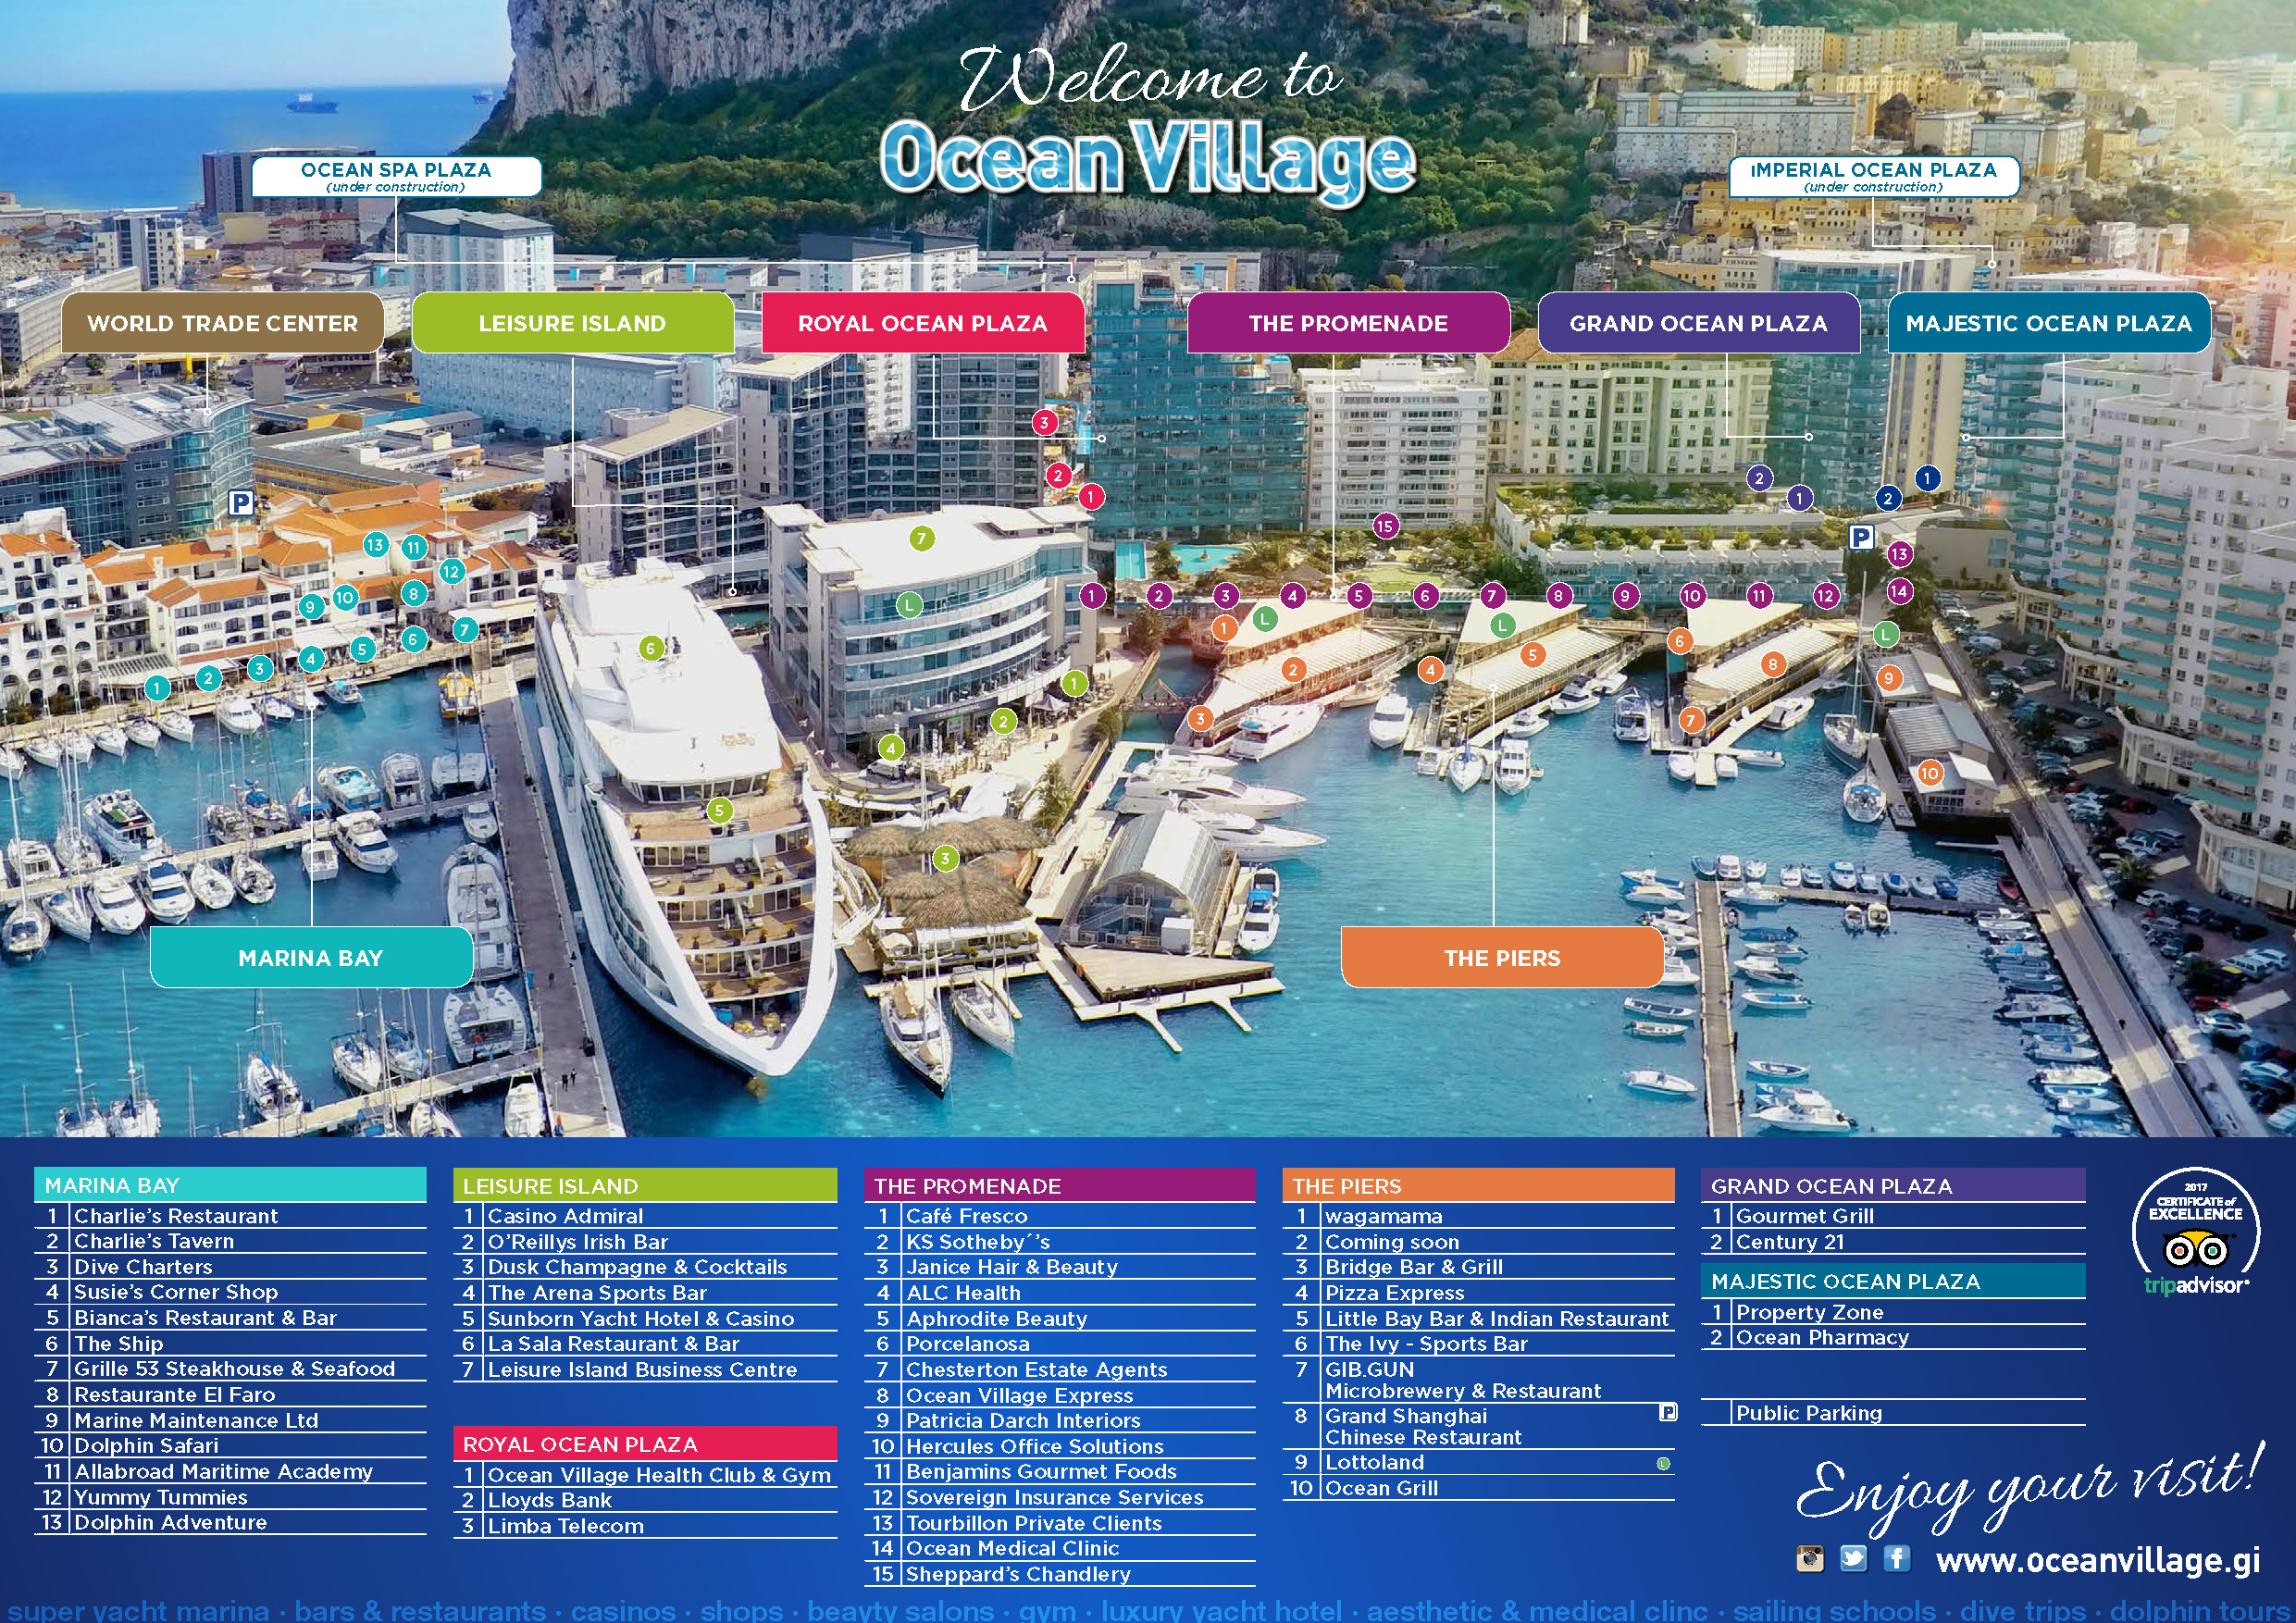 Click here to download Ocean Village Guide Map